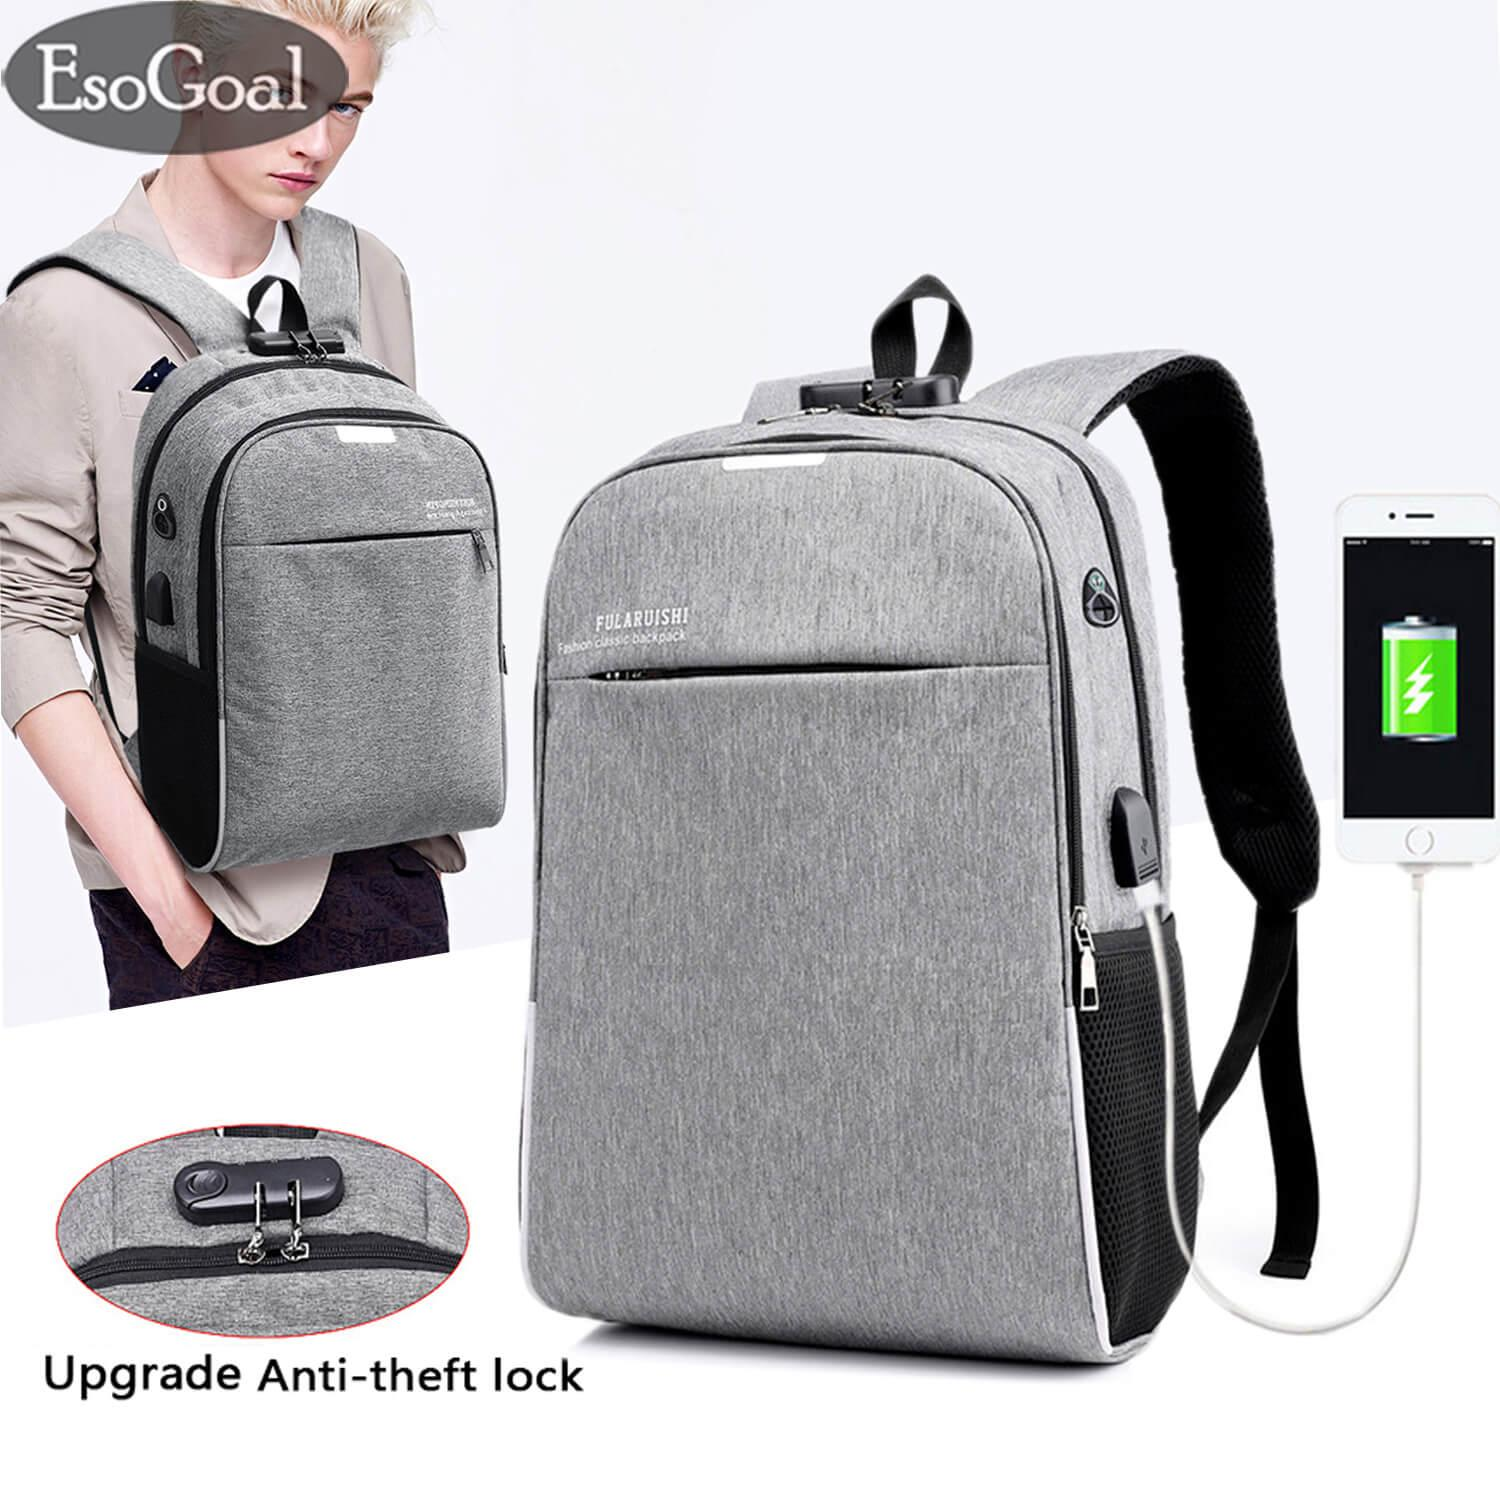 Laptop Backpacks - Buy Laptop Backpacks at Best Price in Singapore ... 35ed56aeb2ddf